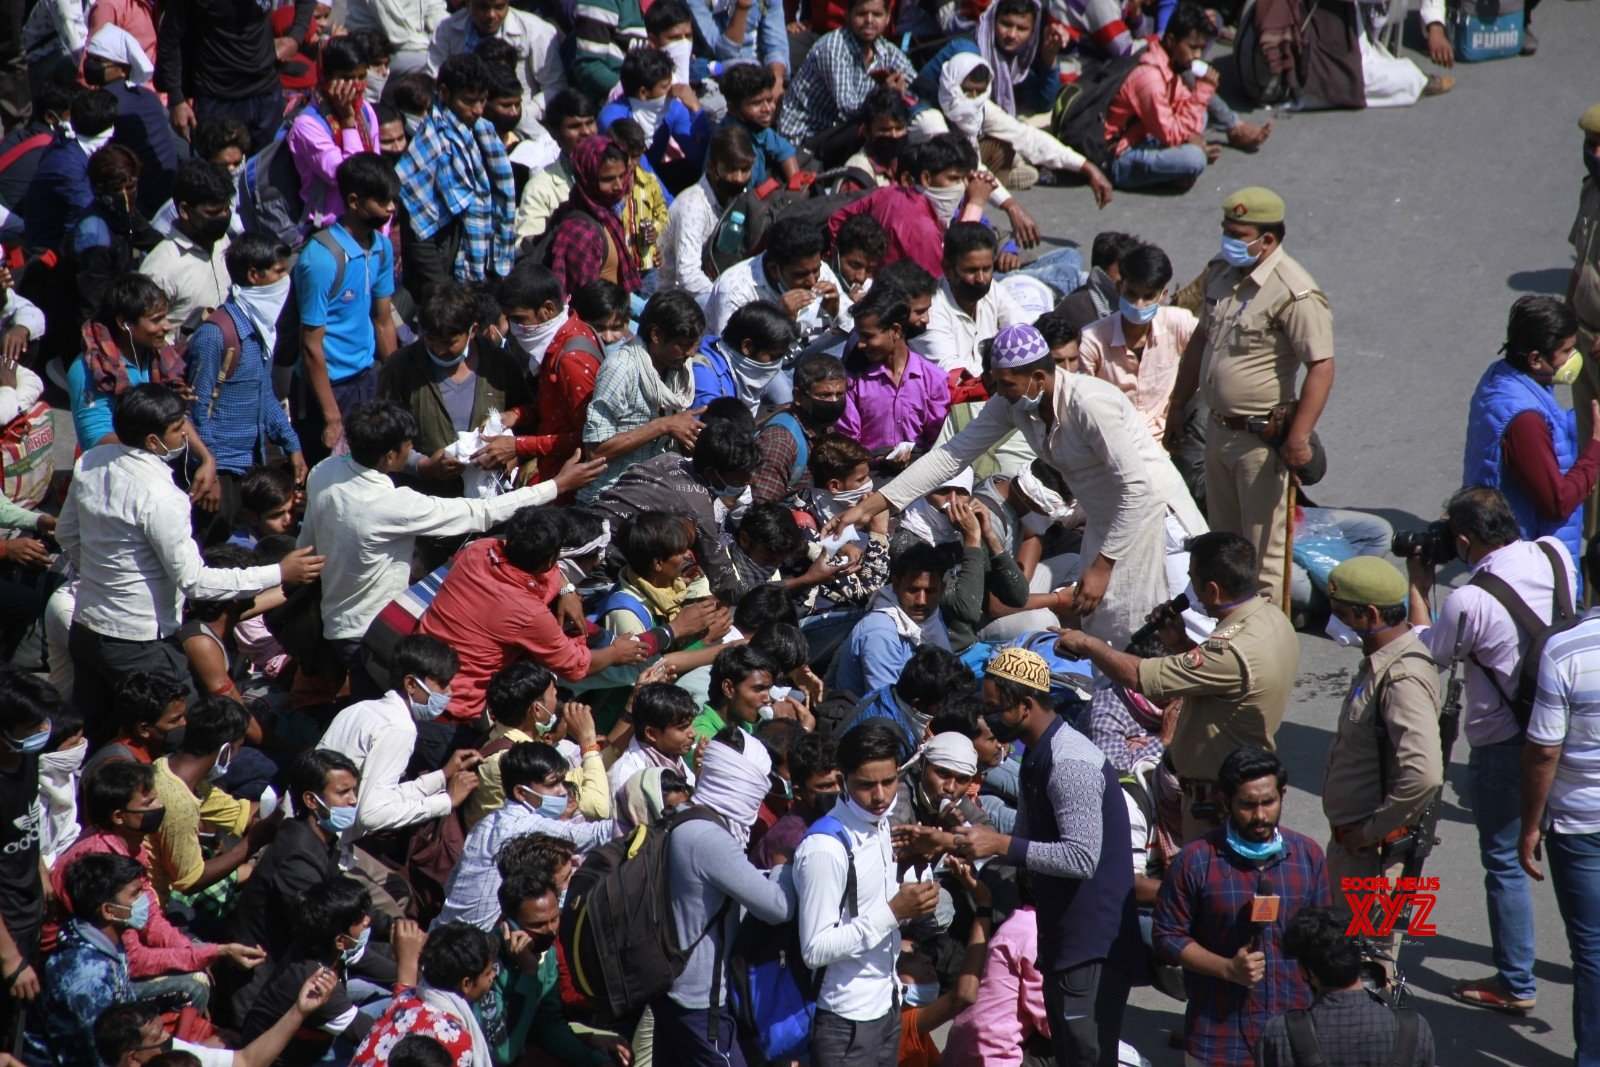 Prohibitory orders issued in Kottayam, day after migrant workers stage stir